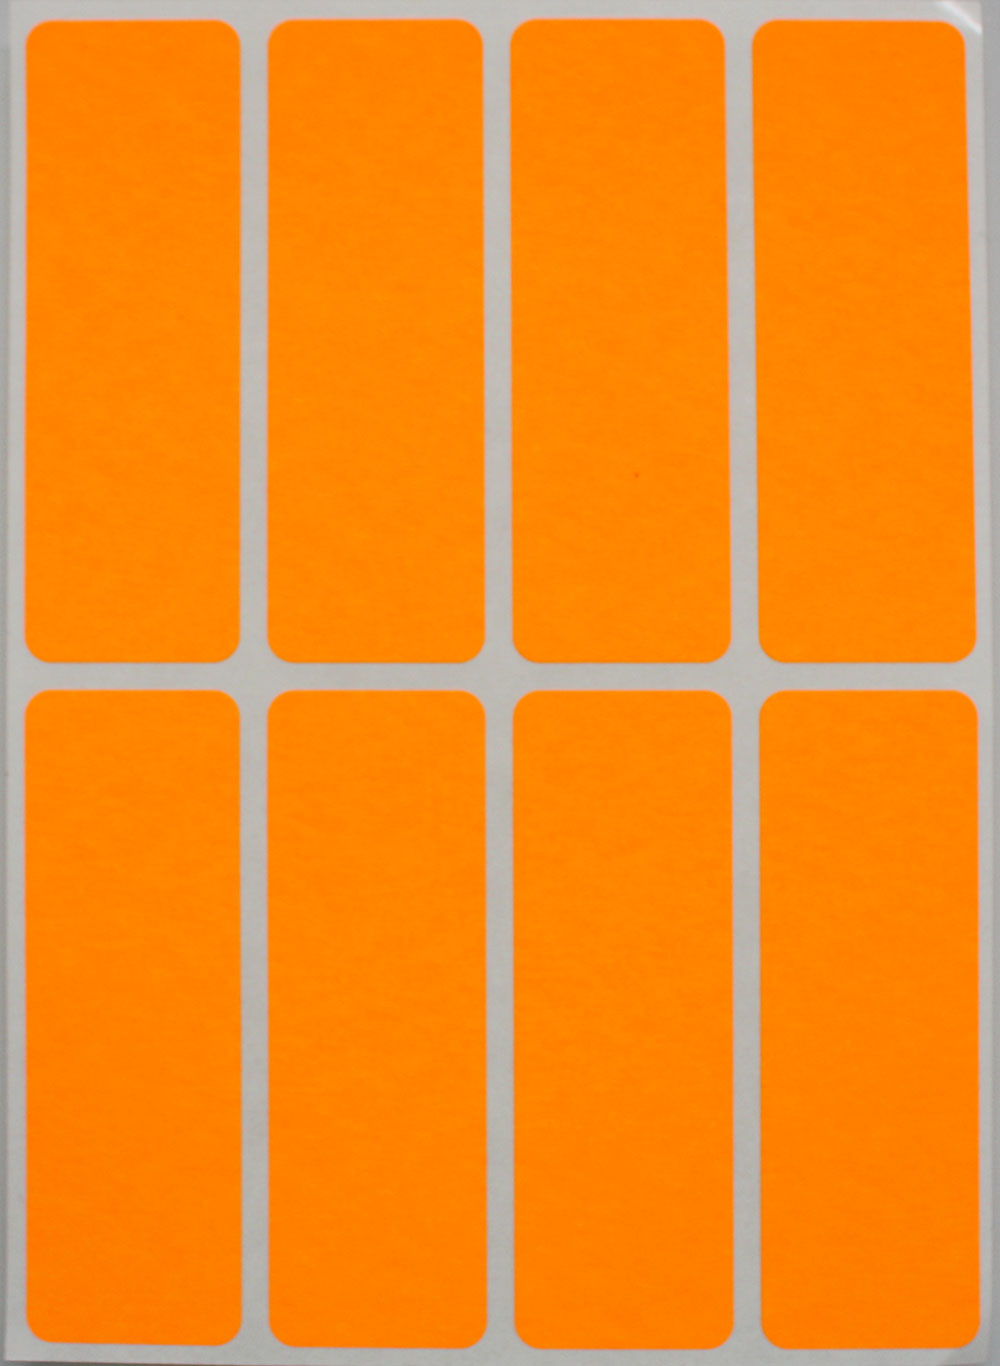 Rectangular Color Coding Labels 3 X 1 Inches Rectangle Label In Neon Orange Name Tags For Kids 40 Pack By Royal Green